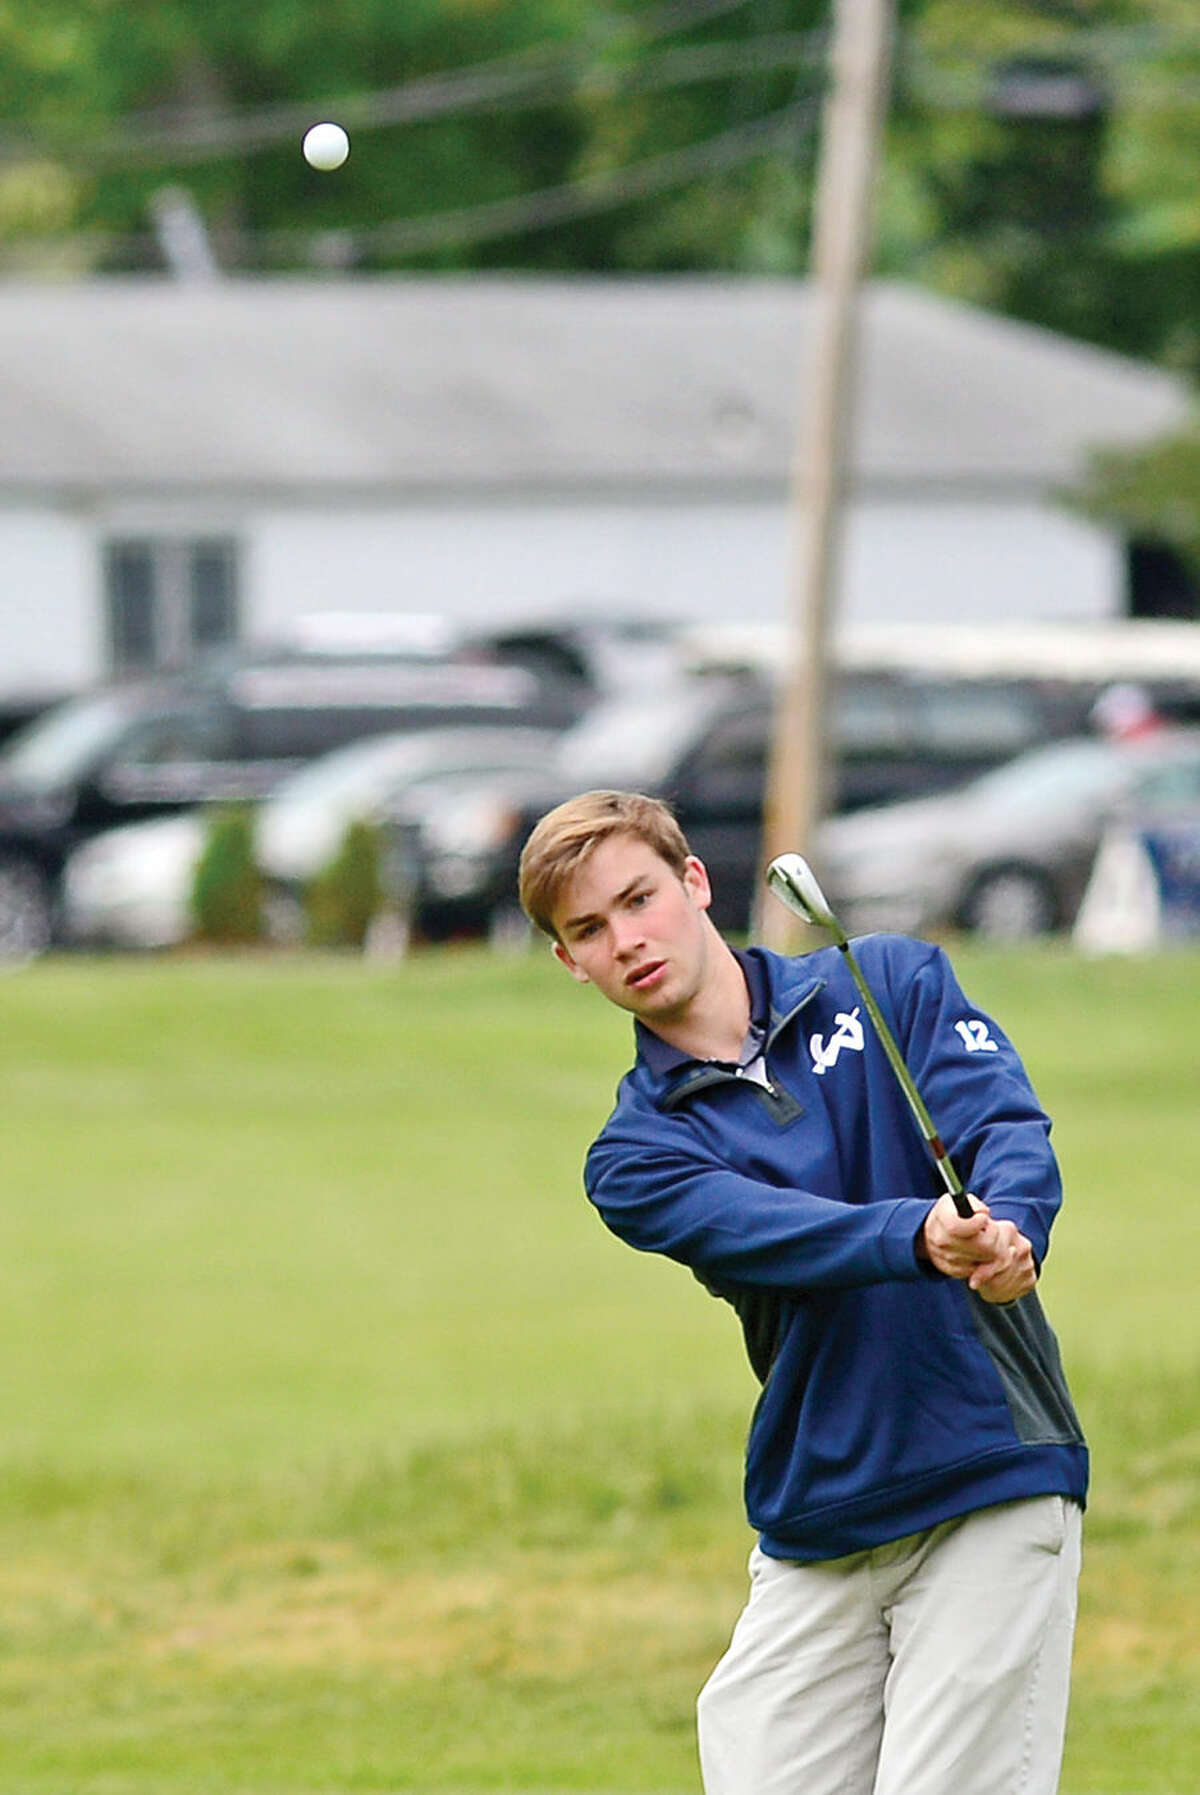 Hour photo / Erik Trautmann High School golfers including Wilton's Richie Williams compete in the annual Chappa Golf Tournament at Longshore Club Park in Westport Thursday